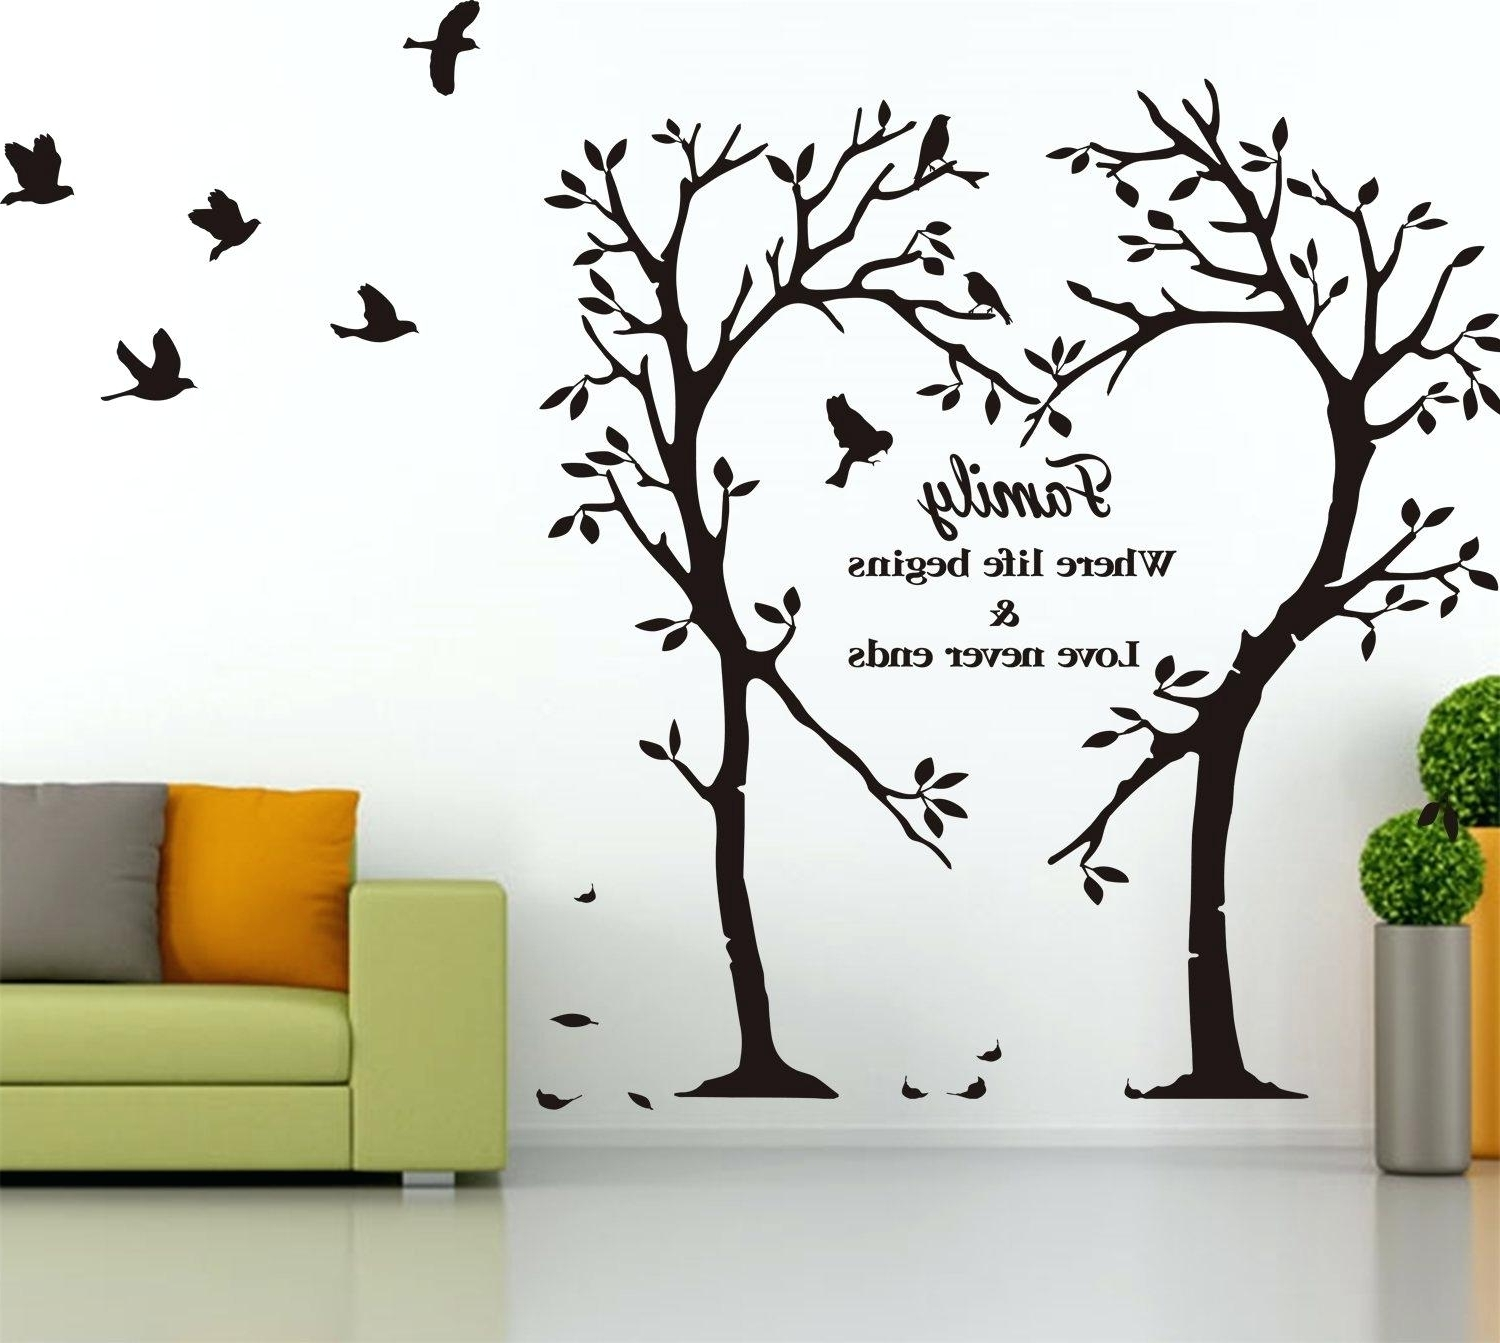 Vinyl Wall Decals Trees Wall Art Stickers Large Flower Roses Vines For Recent Tree Of Life Wall Art Stickers (View 12 of 15)